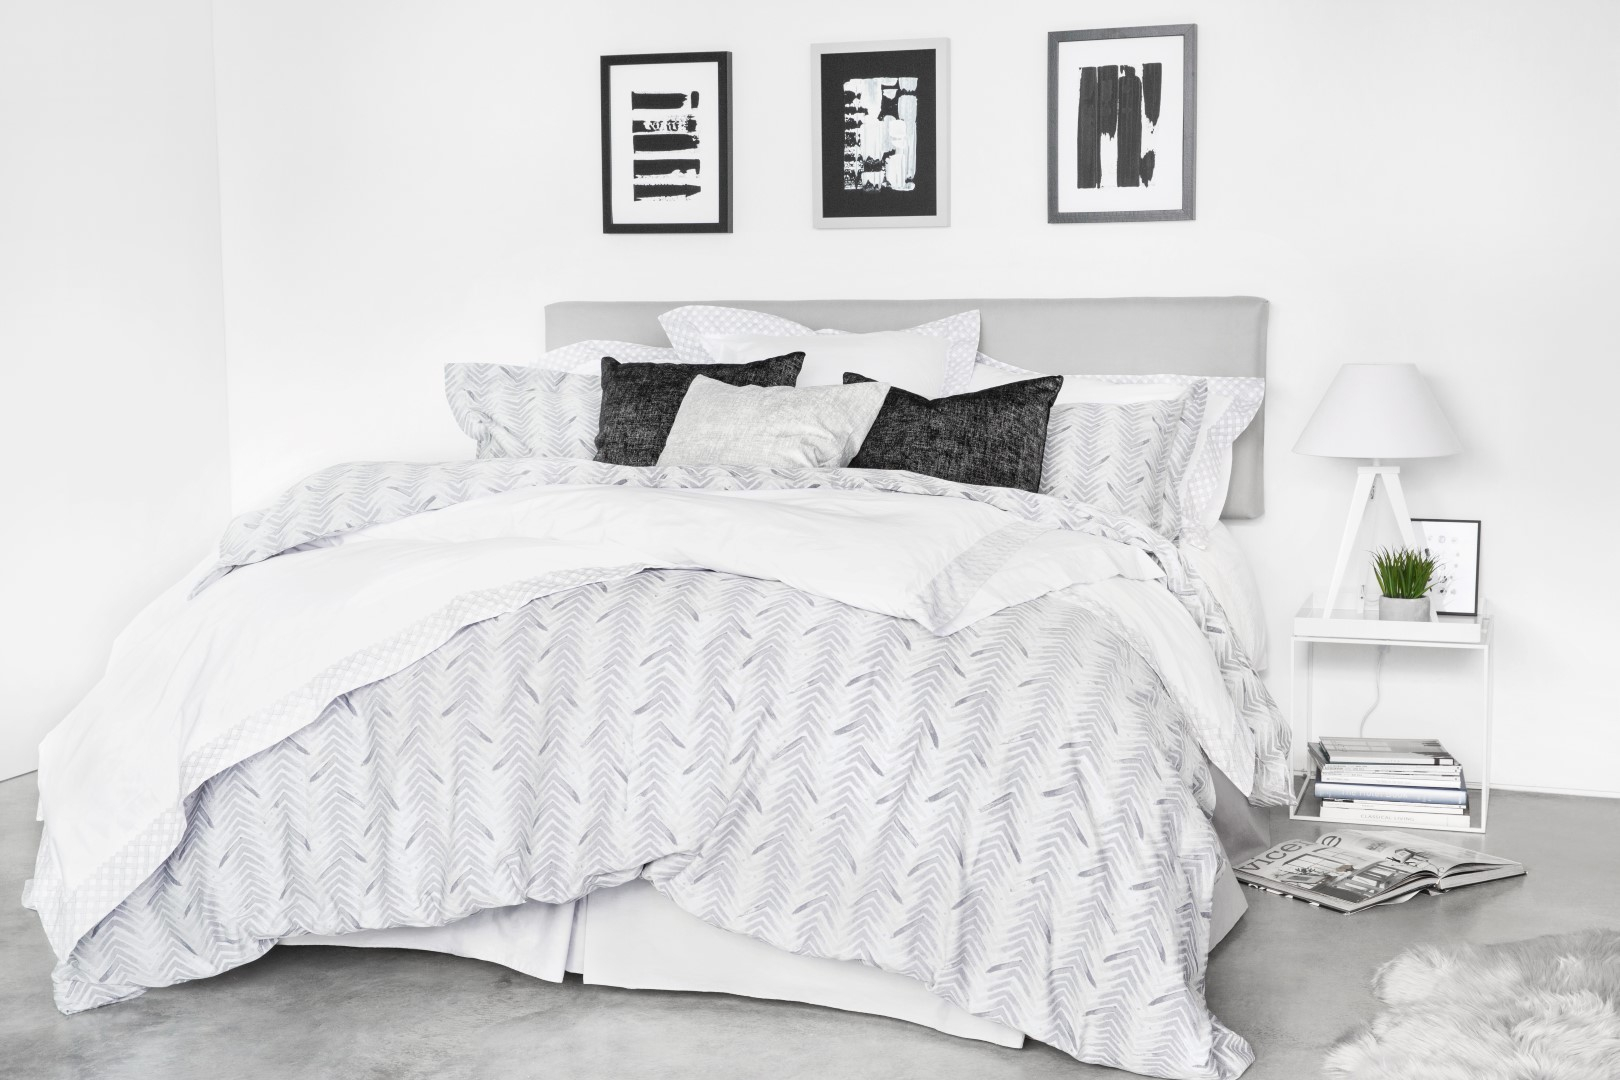 Bedroom Decorating Ideas 20 Must See Styles For Your Bedroom with 13 Awesome Tricks of How to Build Modern Bedroom Decorations